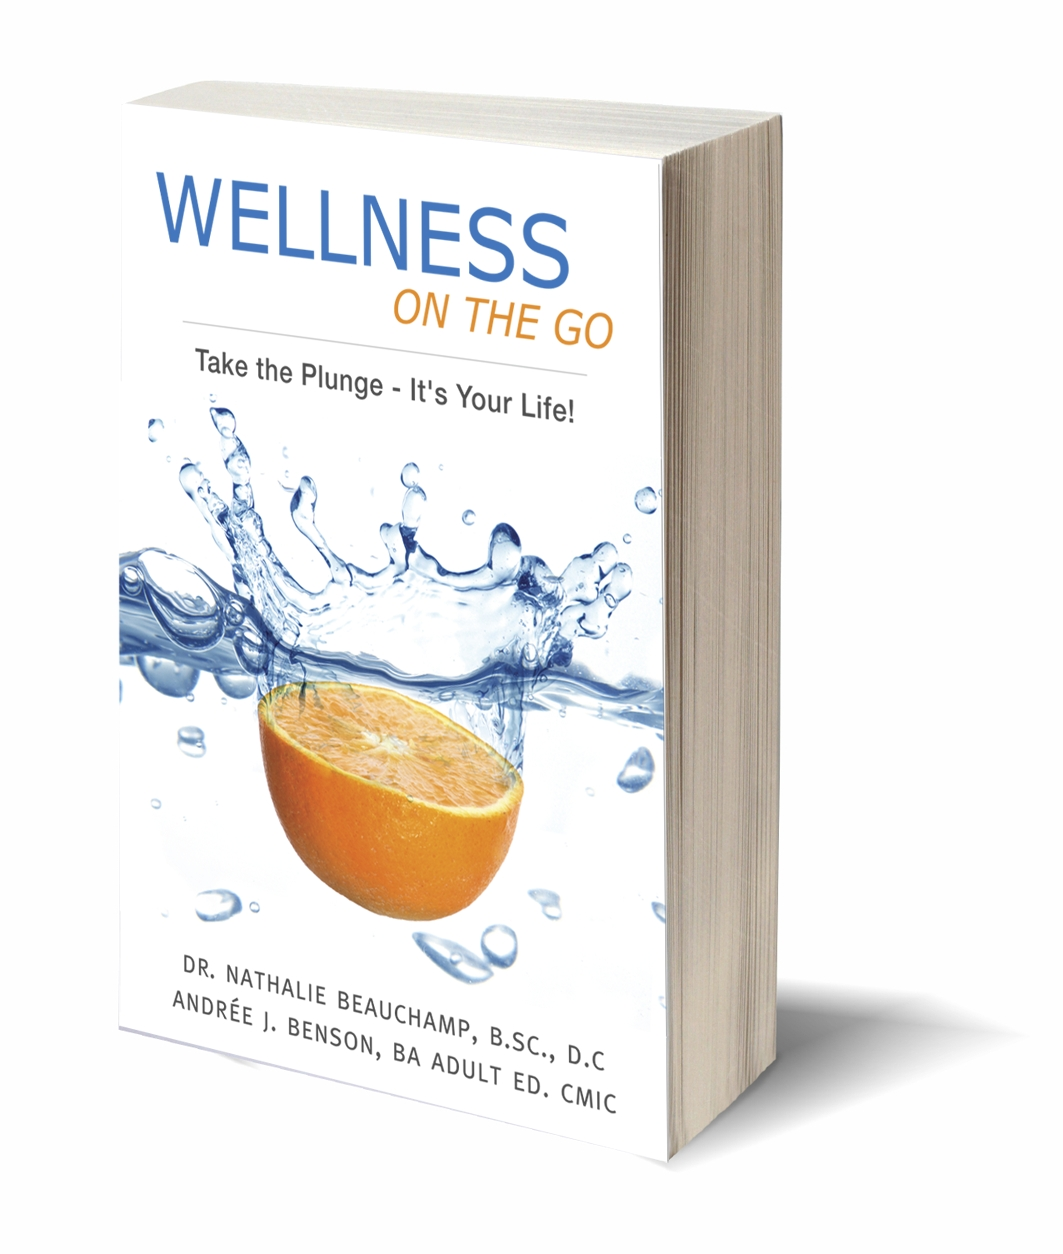 wellness-on-the-go-book